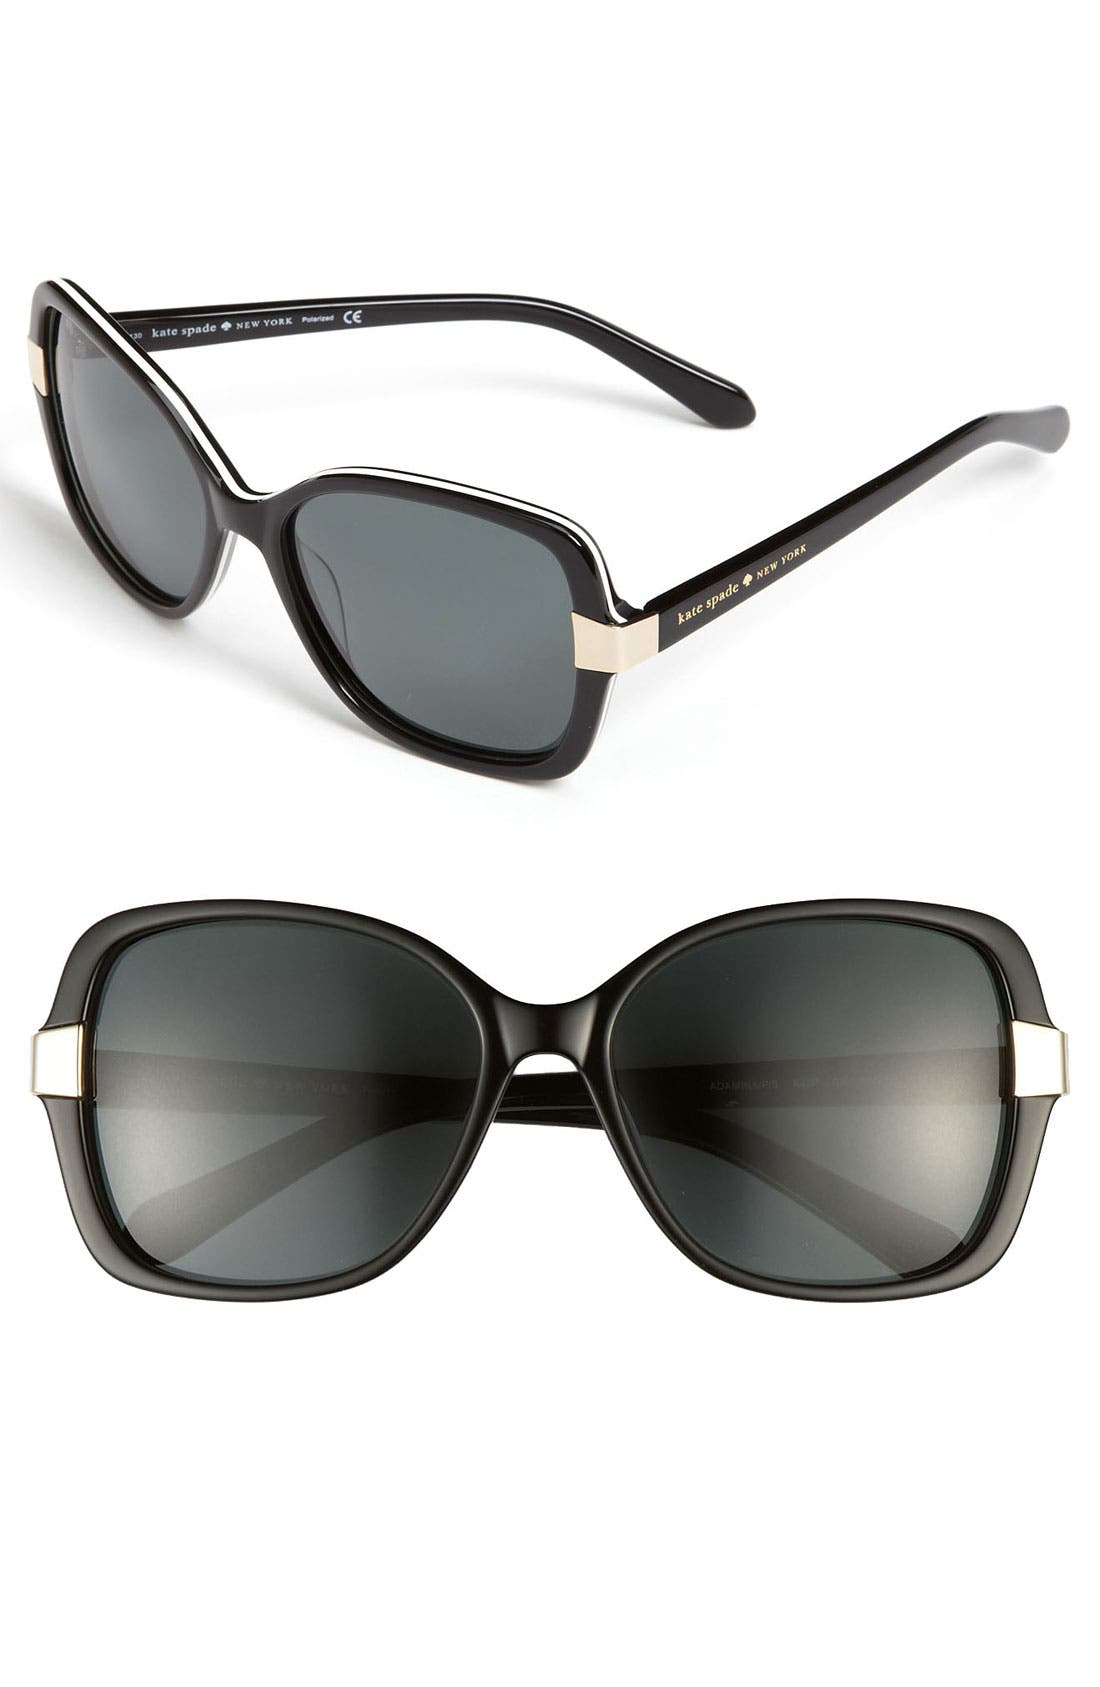 Main Image - kate spade new york 'adamina' 56mm oversized polarized sunglasses